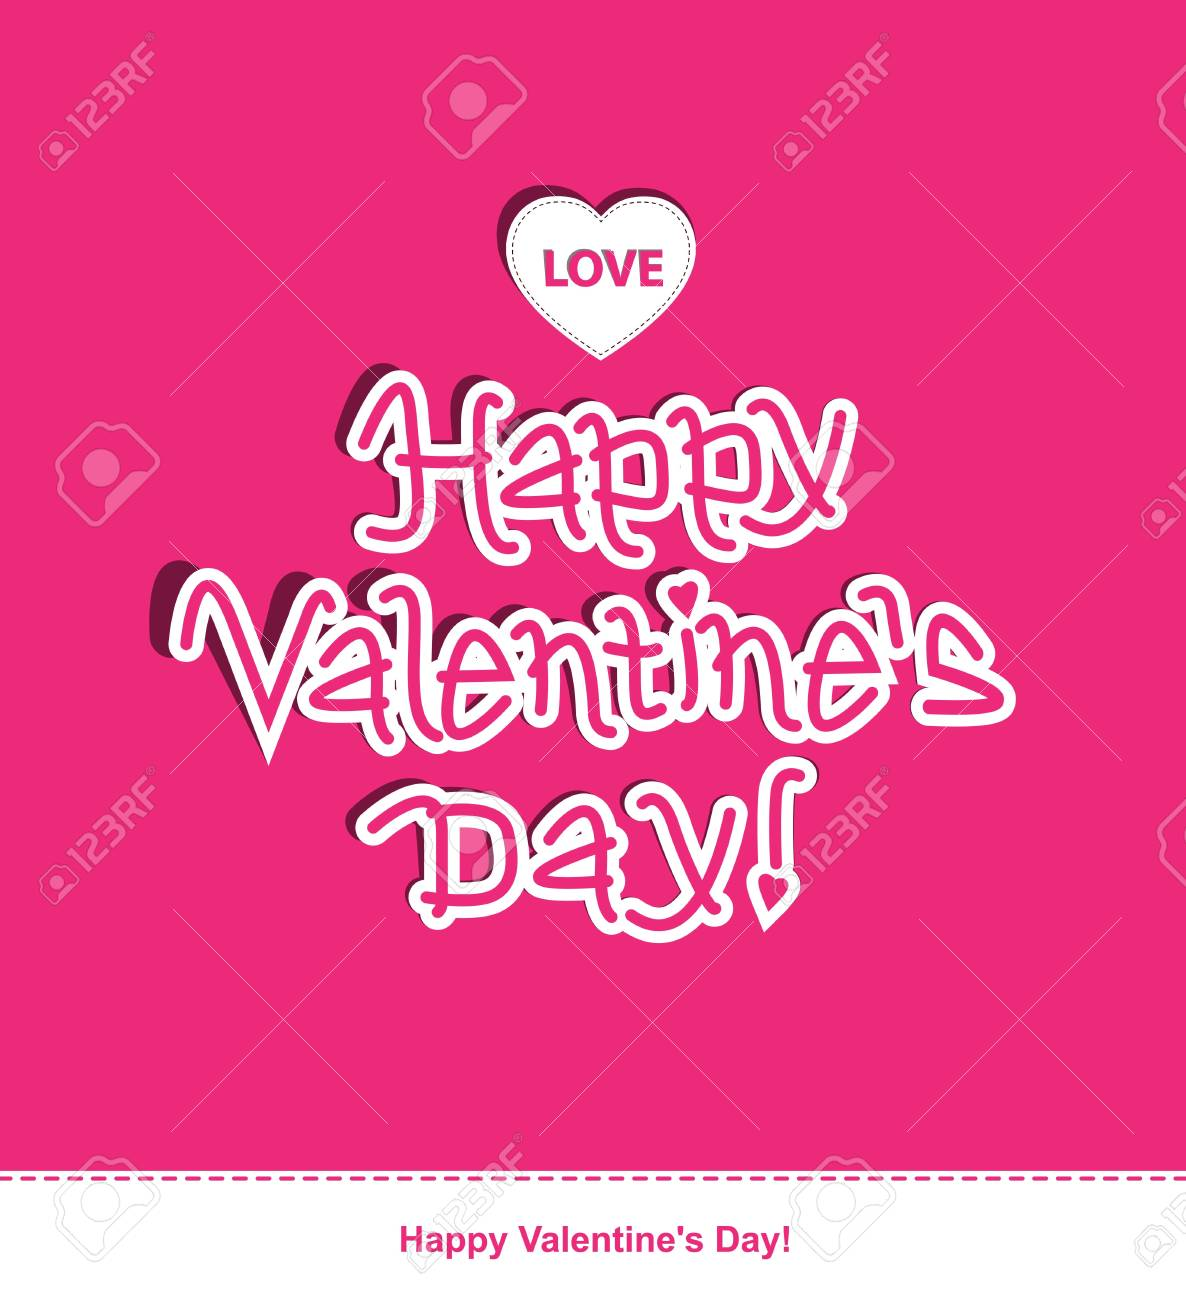 Message for Valentine's Day. Illustration Stock Vector - 17588947